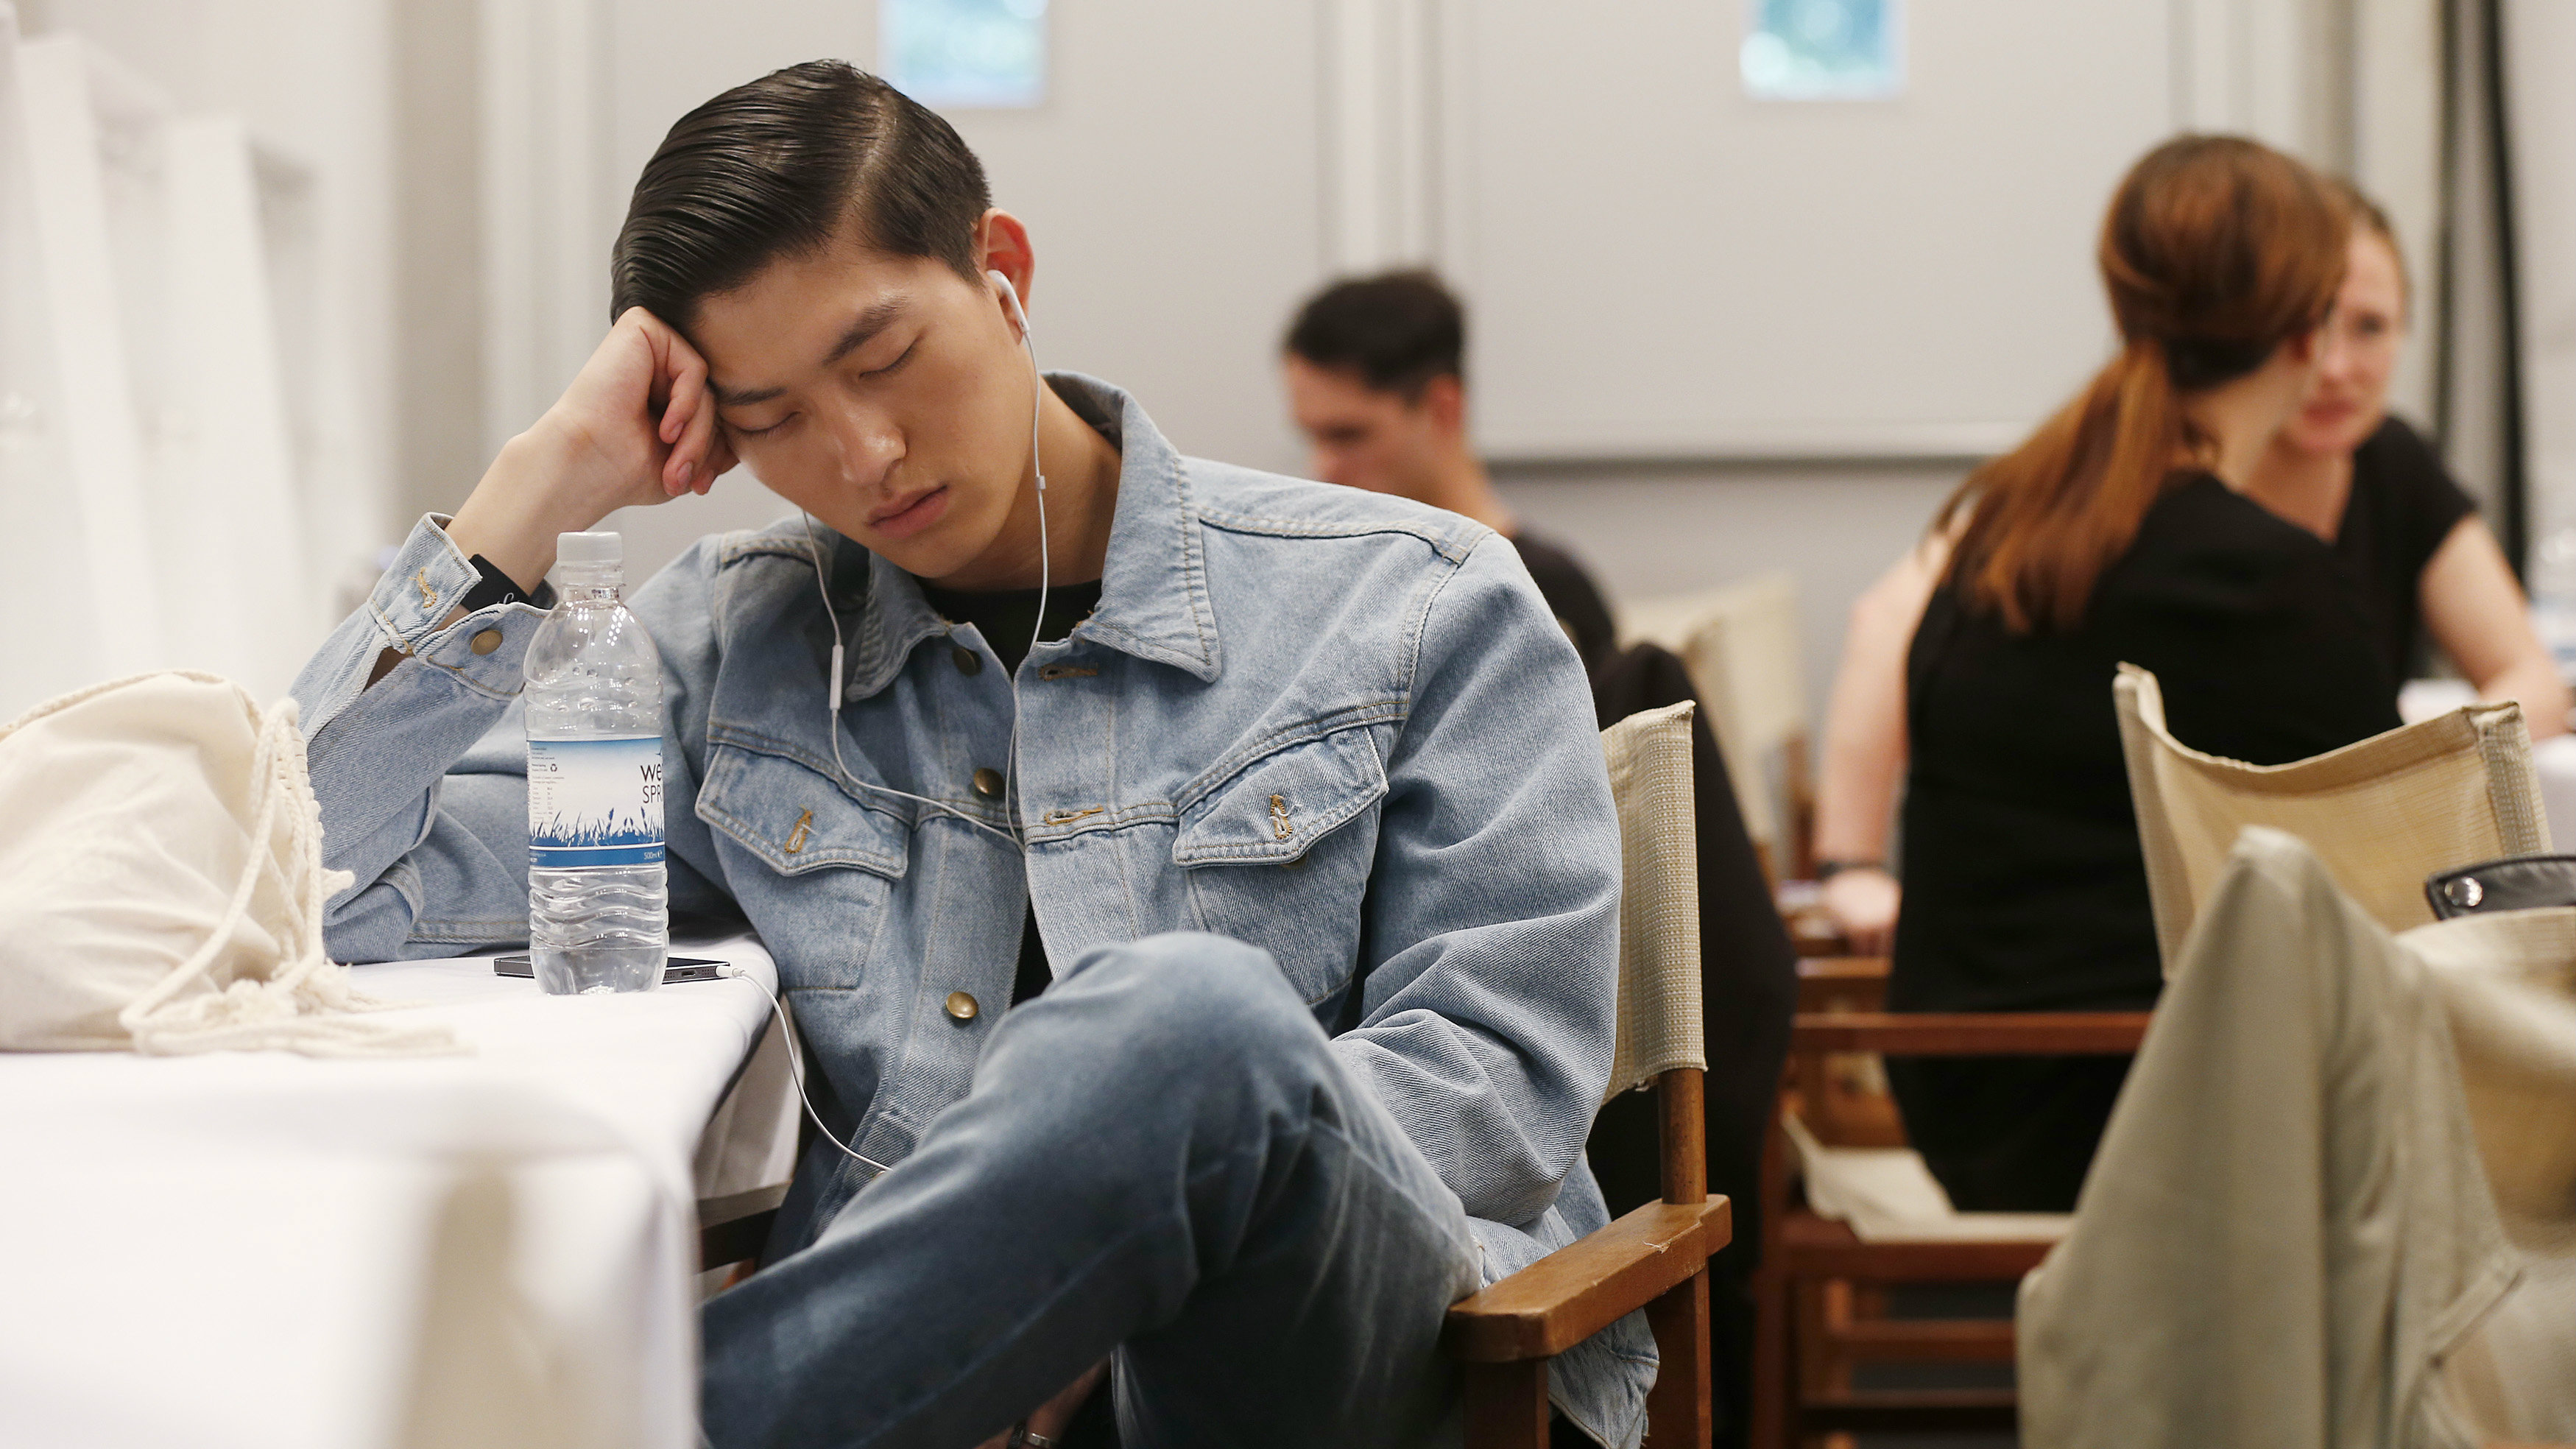 A model naps backstage before the presentation of Burberry Prorsum during its London Collections: Men show in London June 17, 2014. REUTERS/Suzanne Plunkett (BRITAIN - Tags: FASHION)